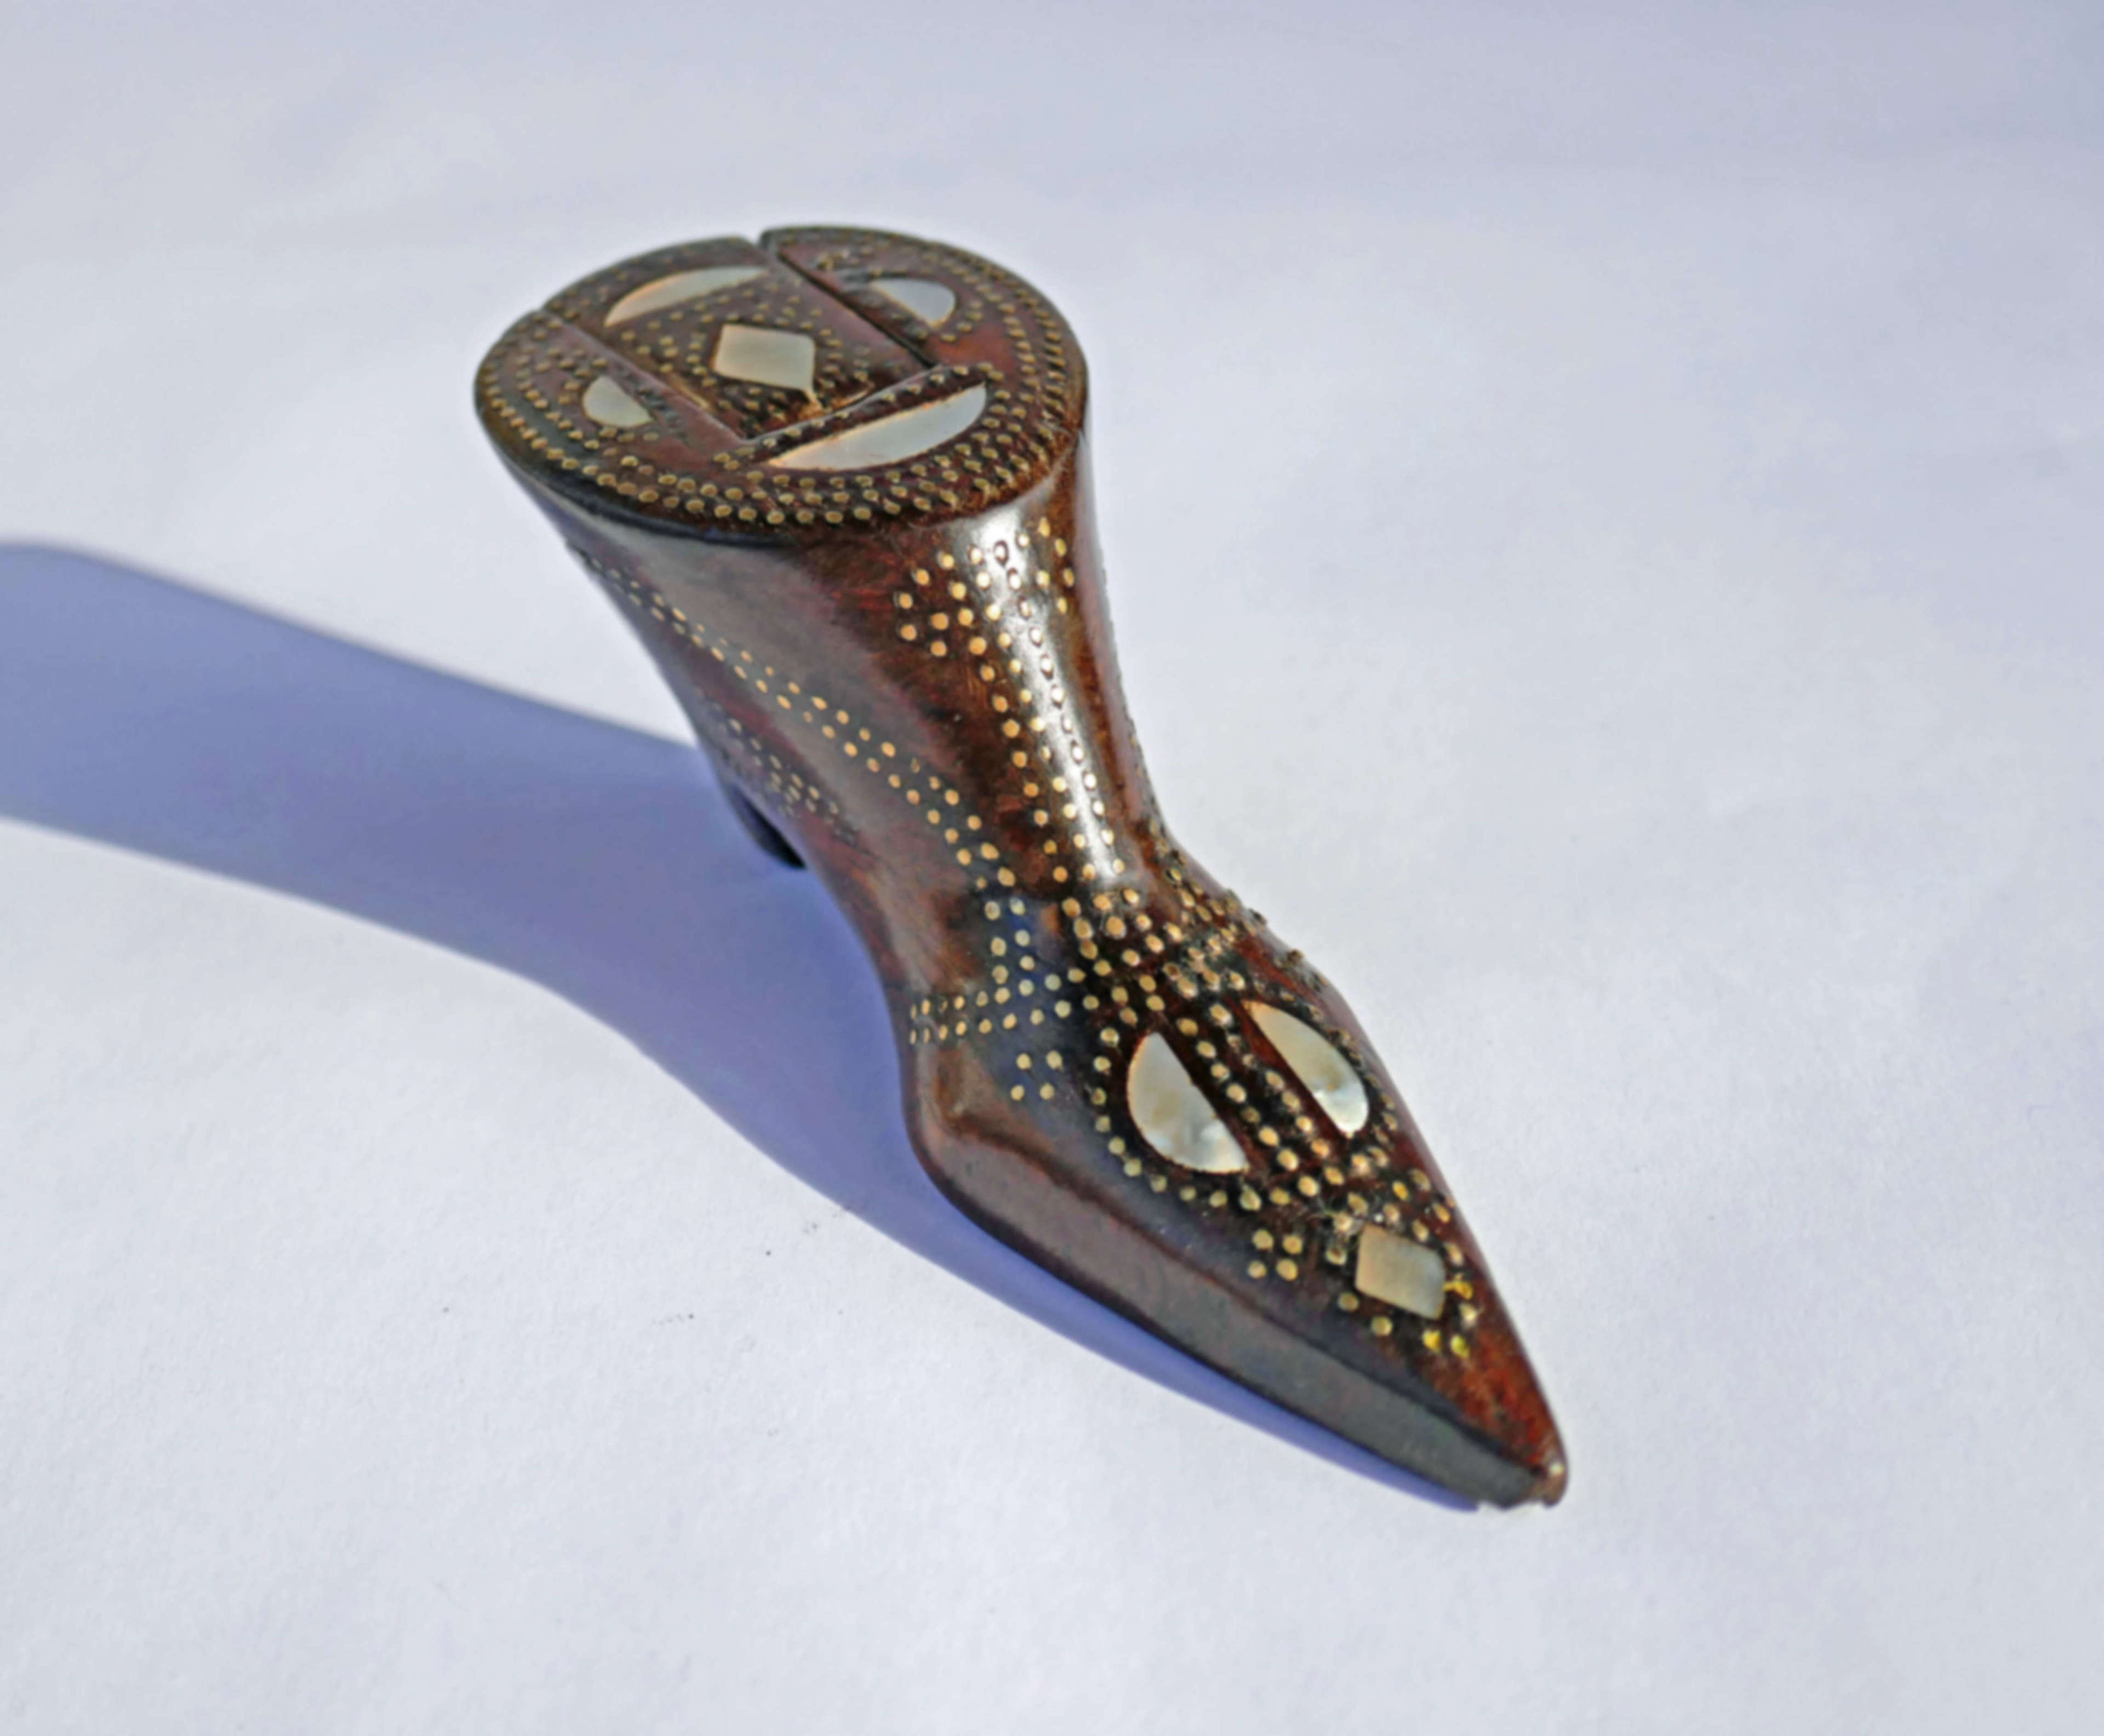 Antique Treen 19thc Mahogany Snuff Shoe Inlaid With Mother Of Pearl.